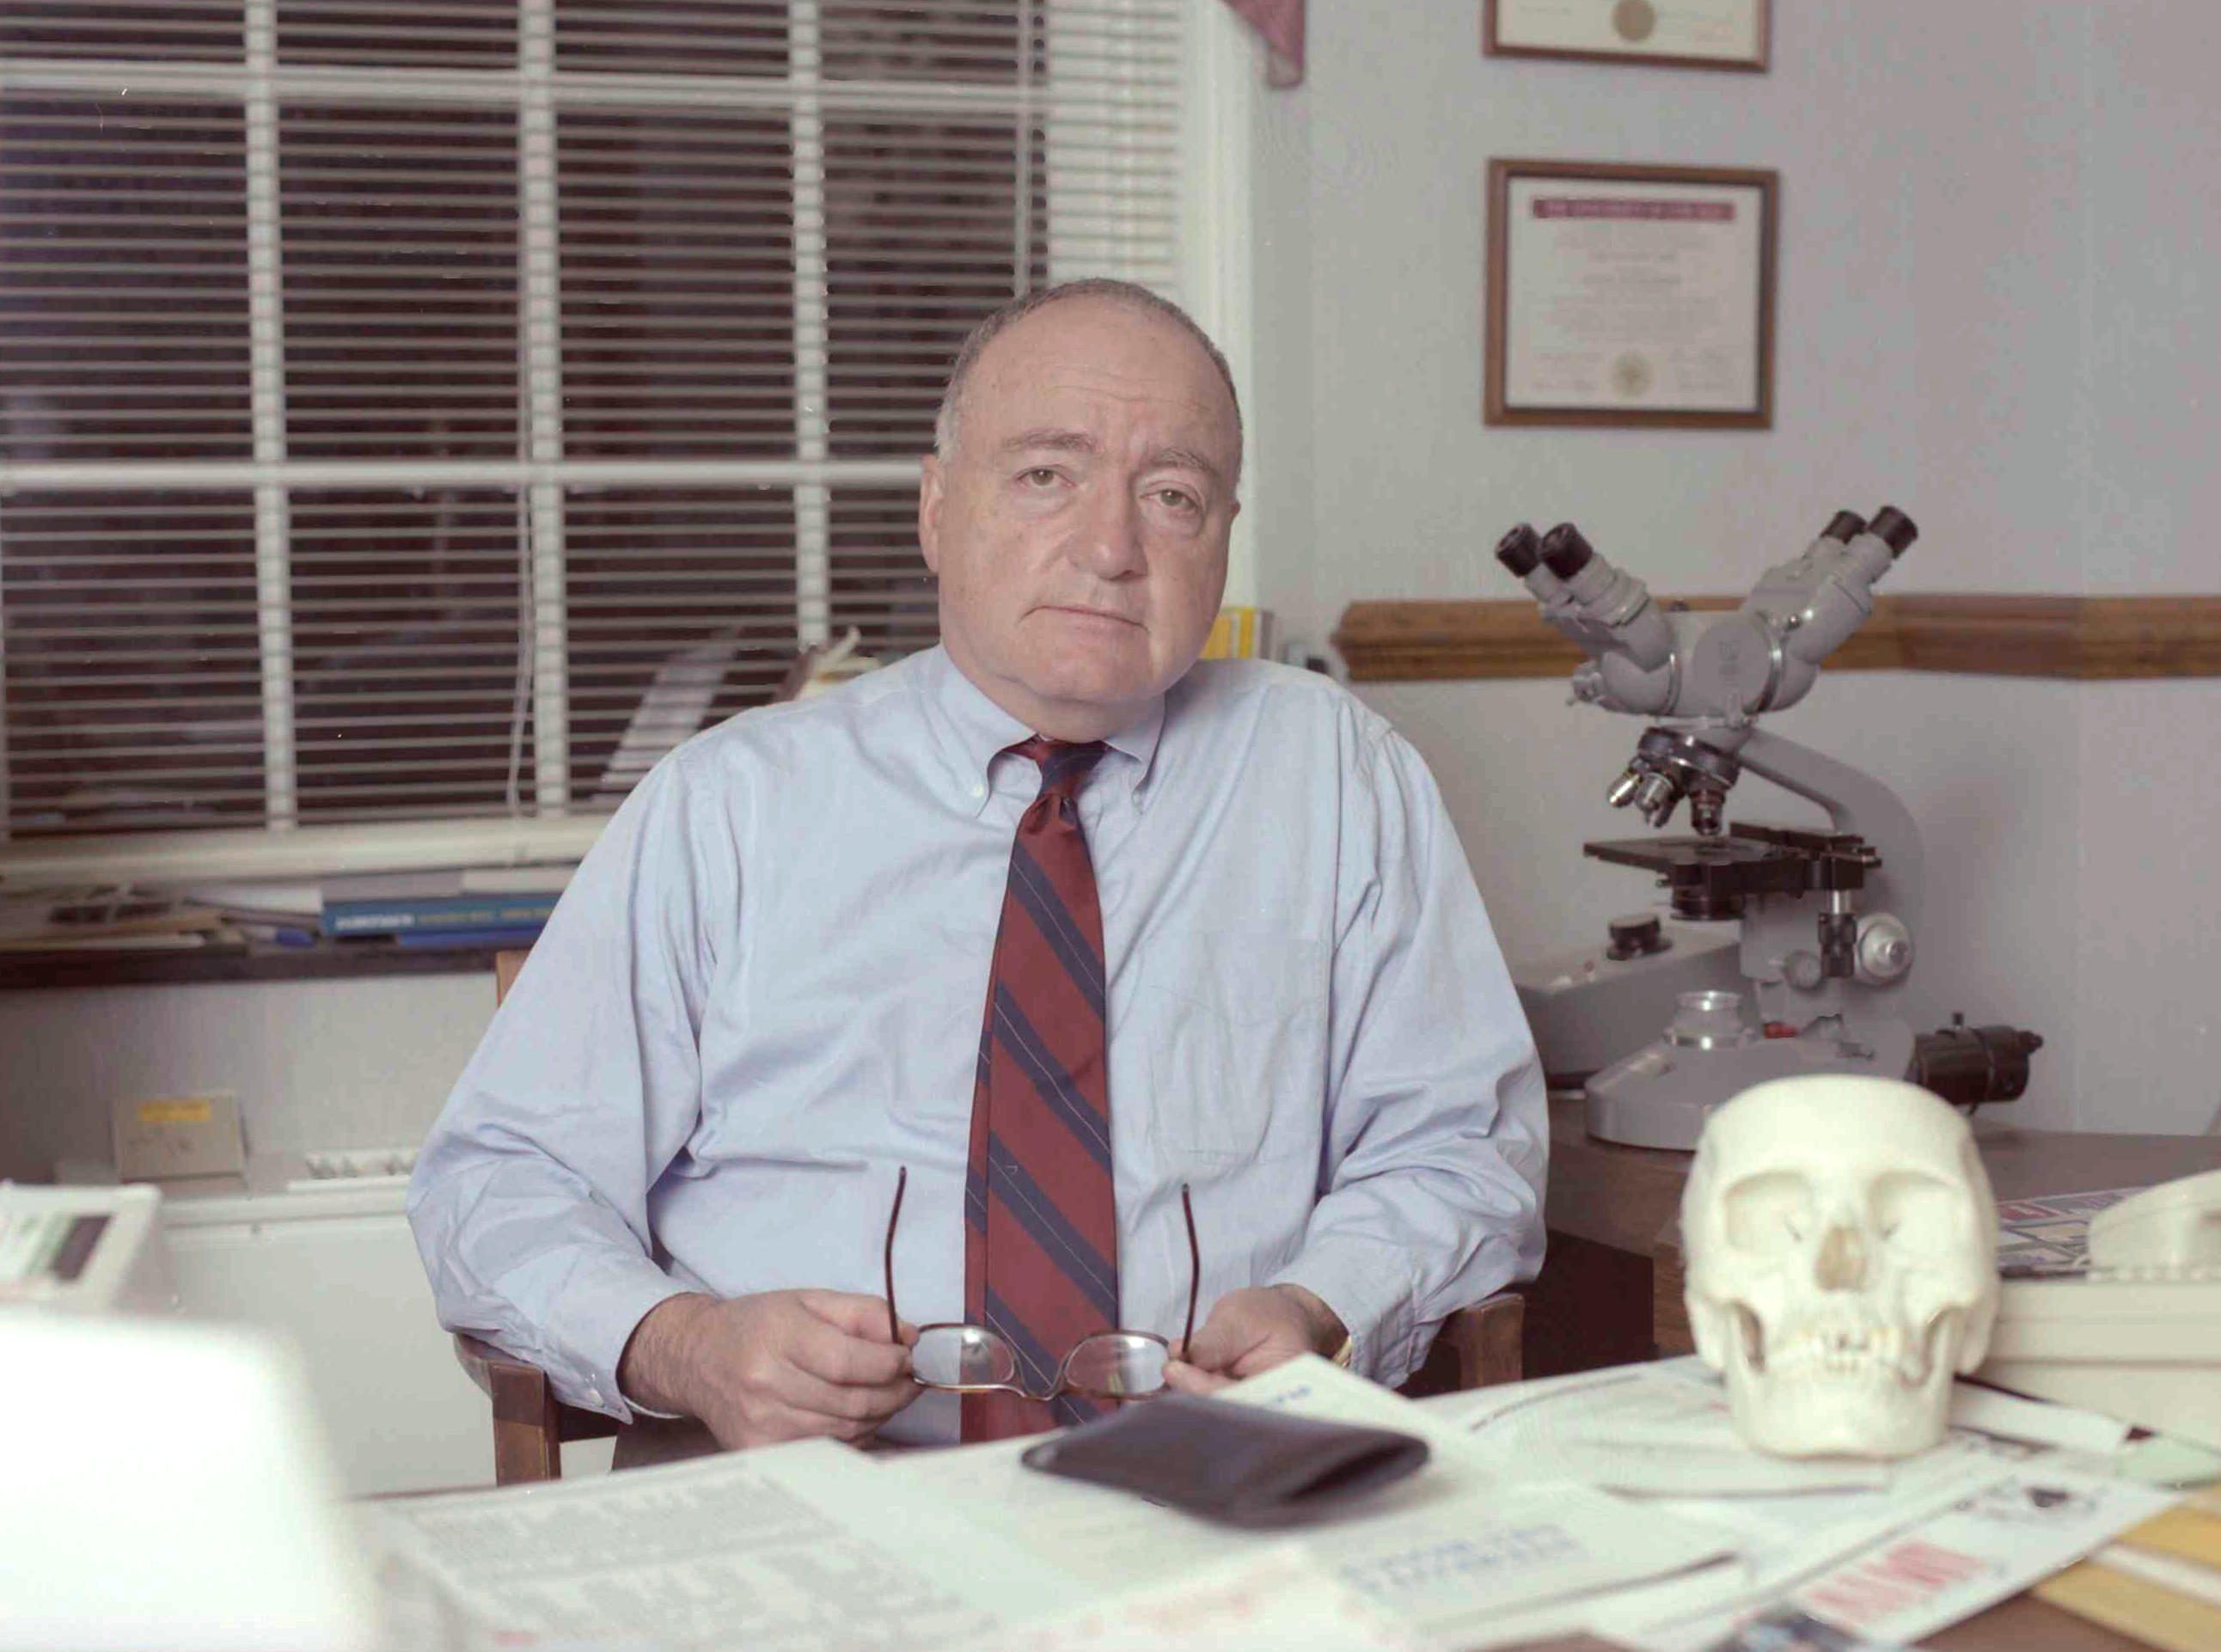 Dr. John Jane sits at his desk.